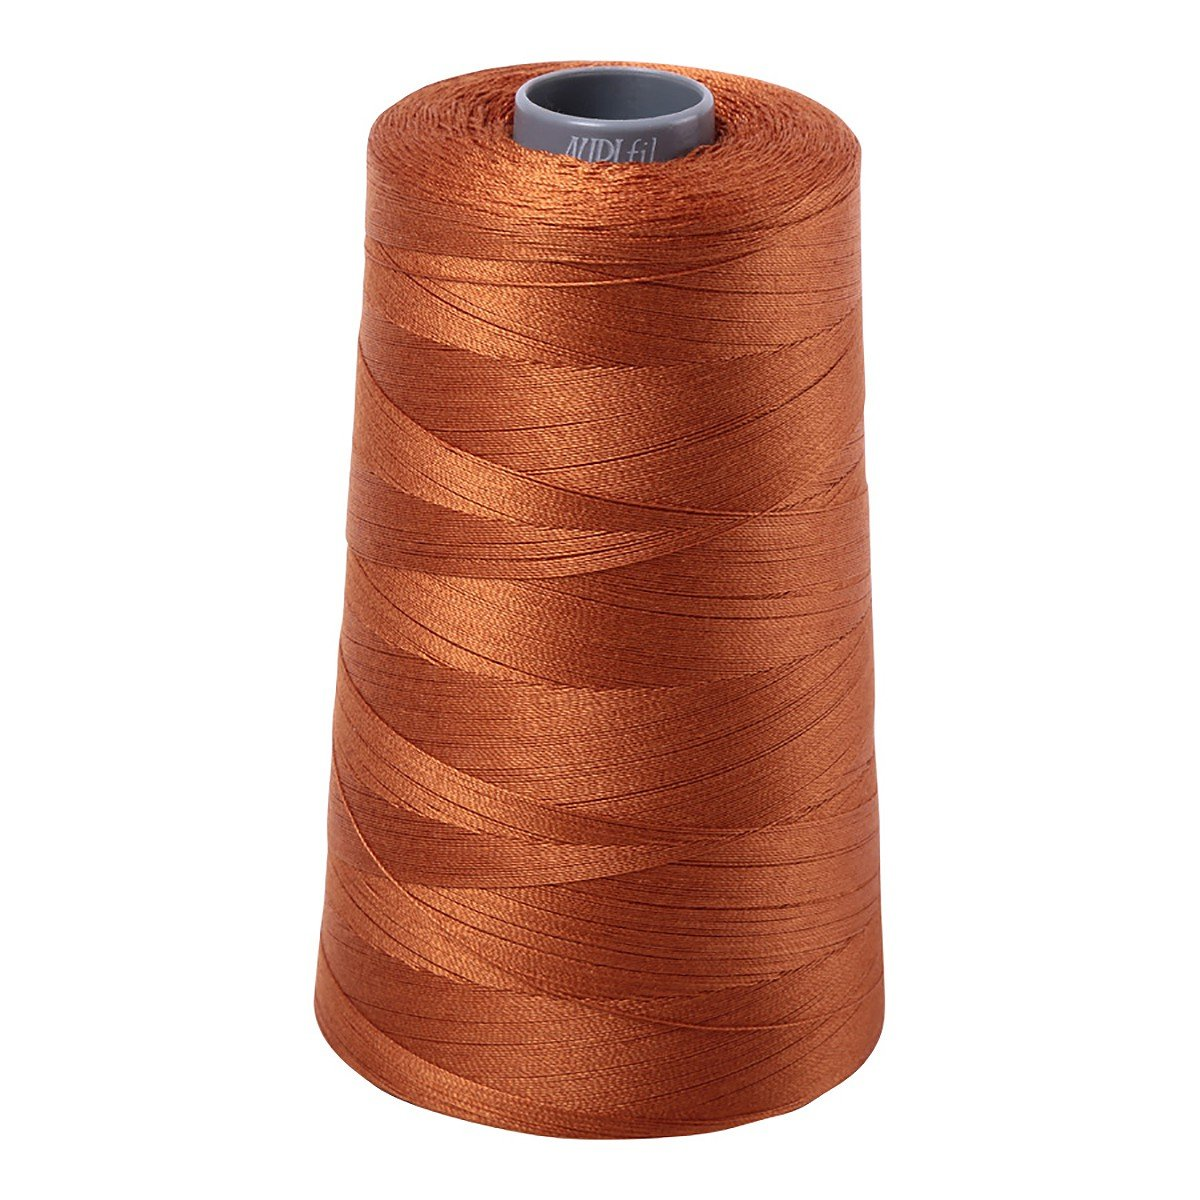 Mako (Cotton) Embroidery Thread 28wt 3609yds Cinnamon